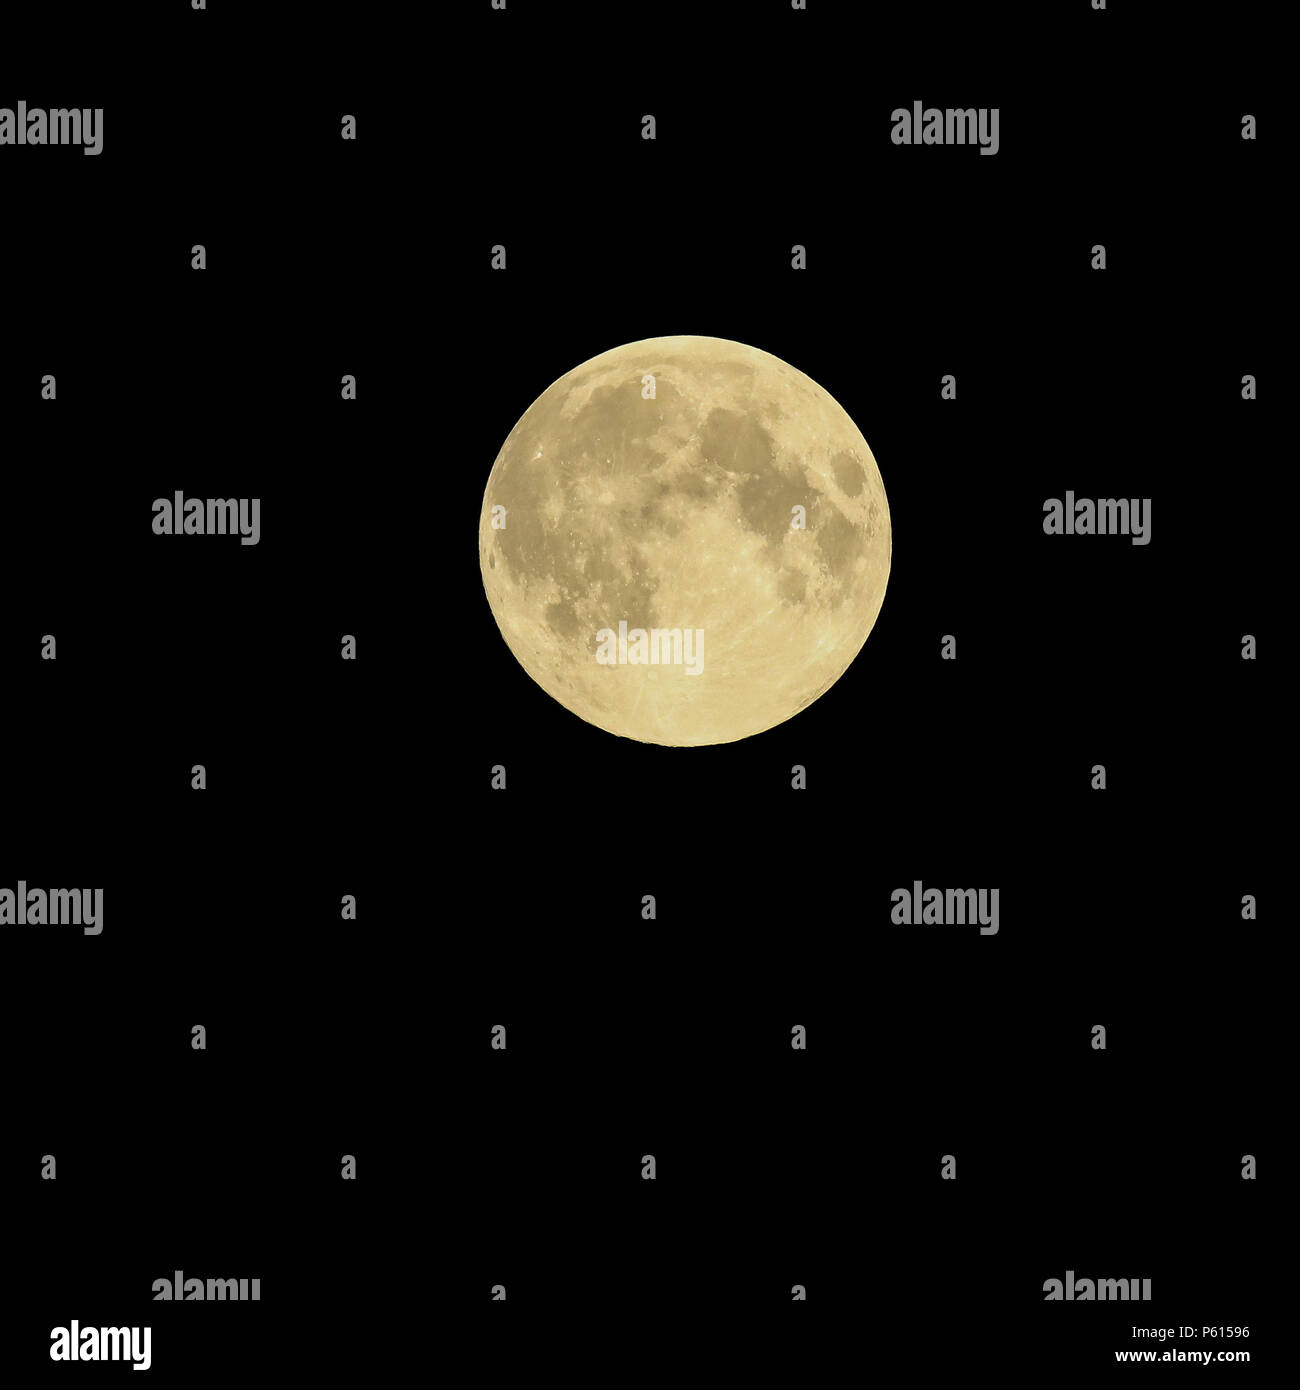 Lurgan, Northern Ireland, UK. 28 June 2018. - the June full moon and the planet Saturn in the night sky. Shot taken at  00.47 BST. Credit: David Hunter/Alamy Live News. - Stock Image